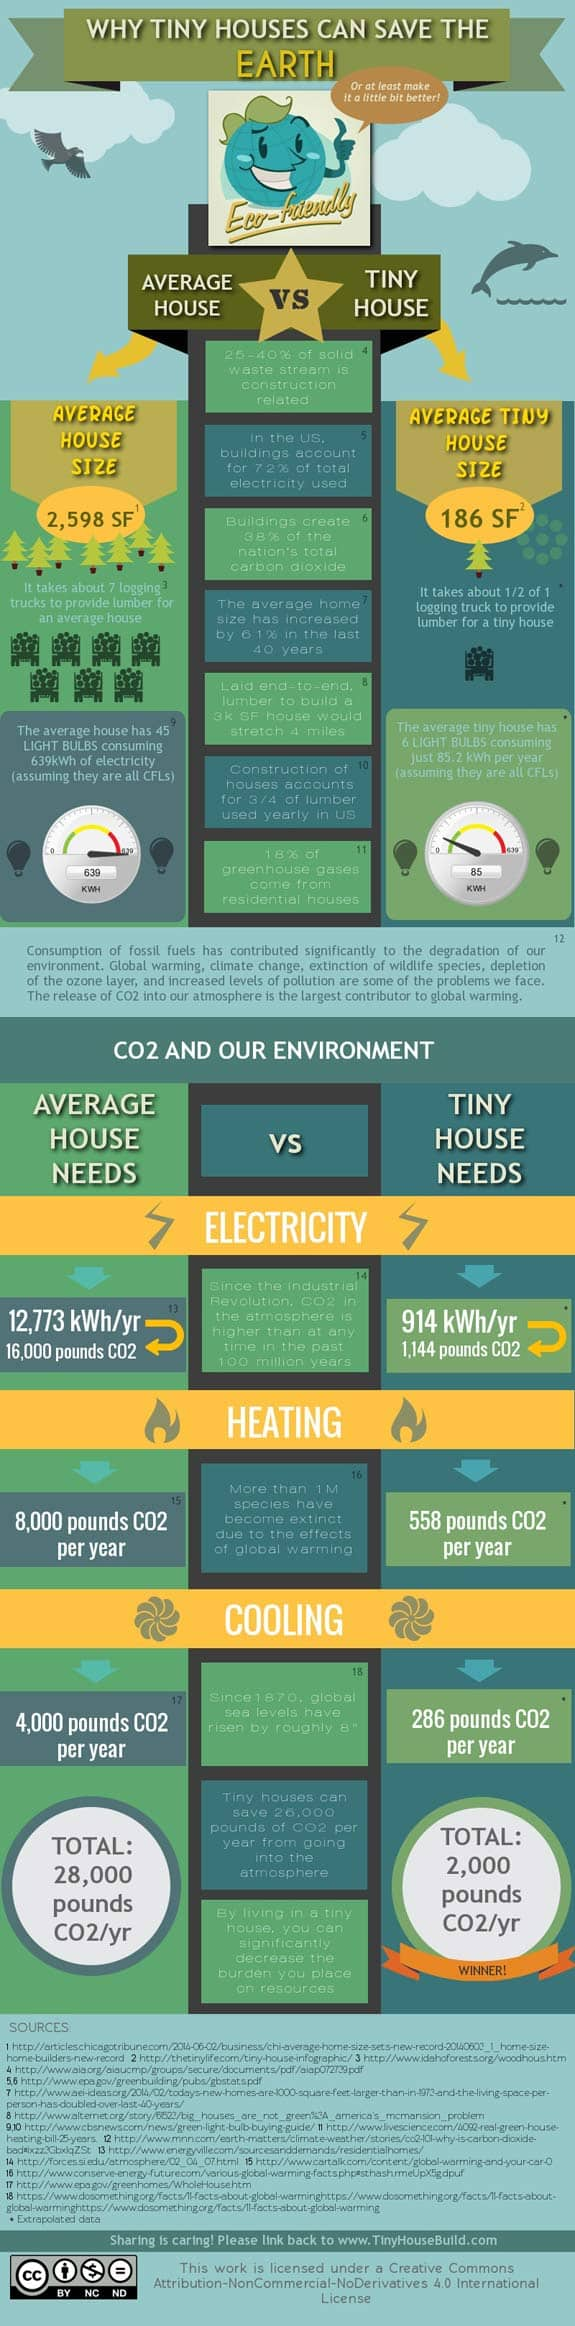 Why Tiny Houses Can Save The Earth Infographic